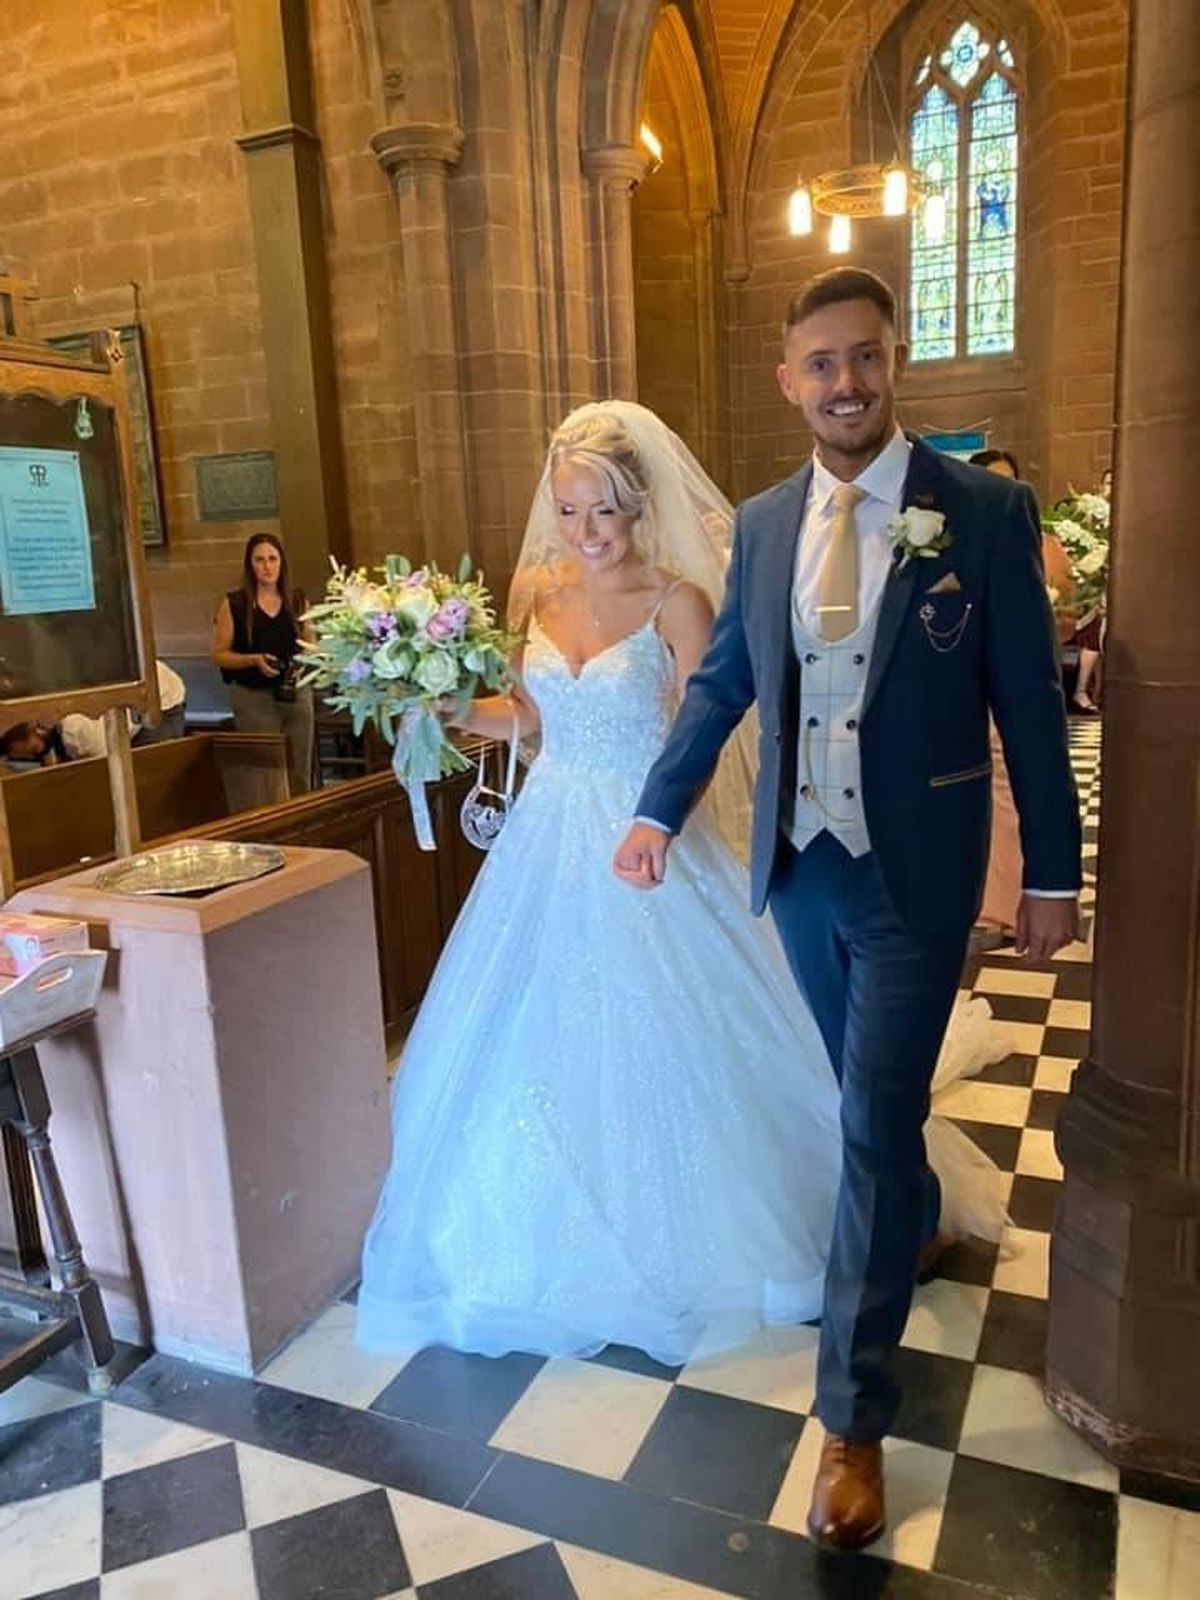 Lydia and Tidur Evans-Hughes on their wedding day